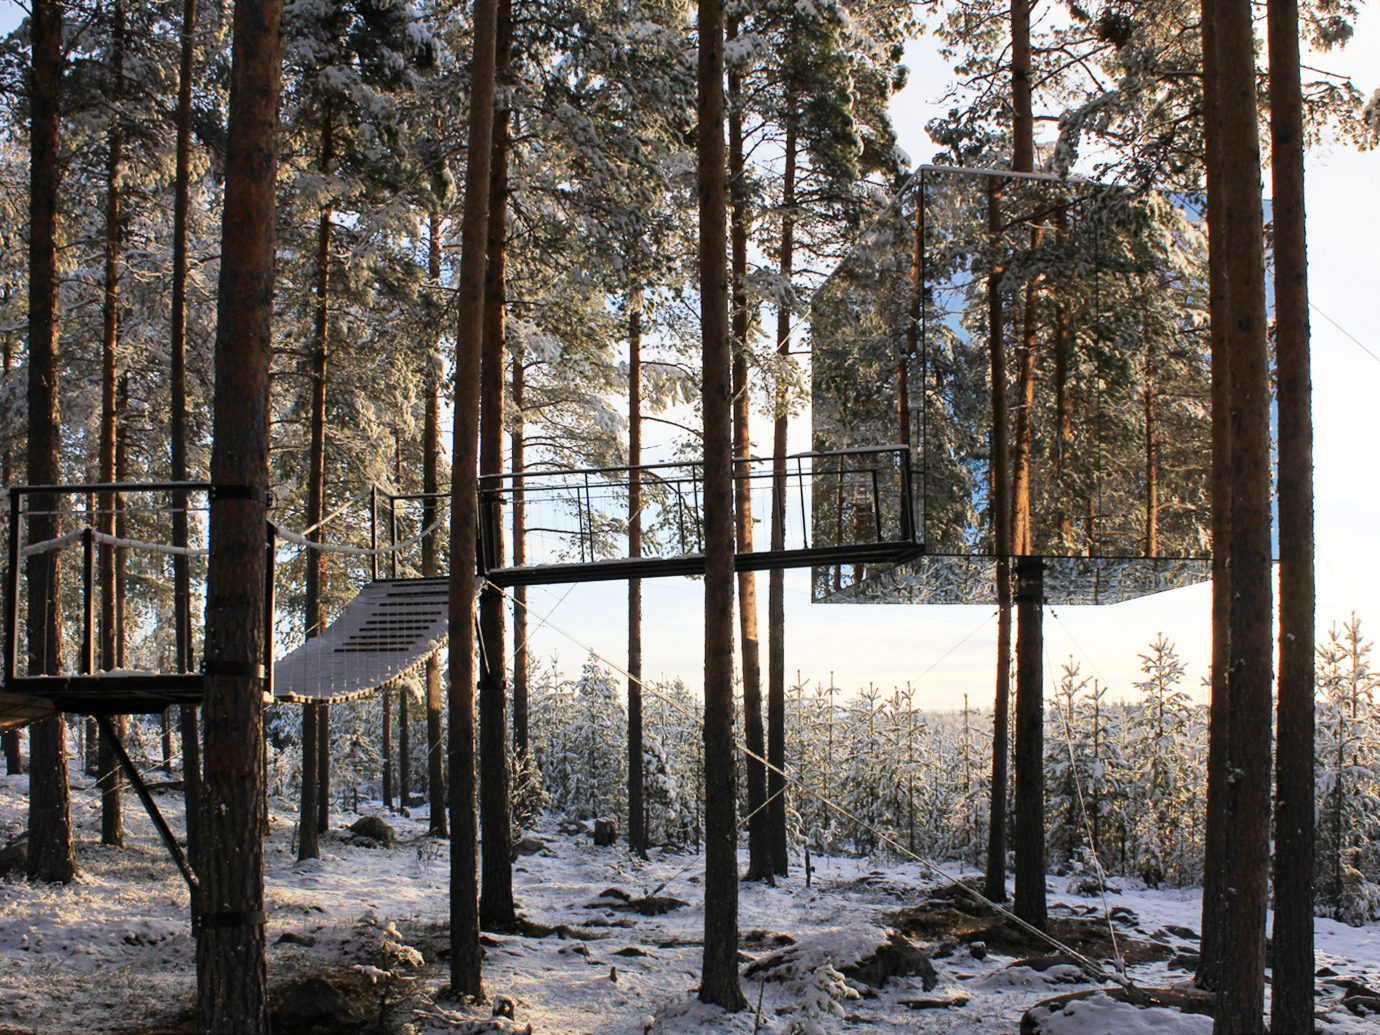 Hotels tree outdoor habitat snow Winter Nature wilderness natural environment weather woodland season Forest woody plant wood sunlight autumn conifer area wooded day surrounded